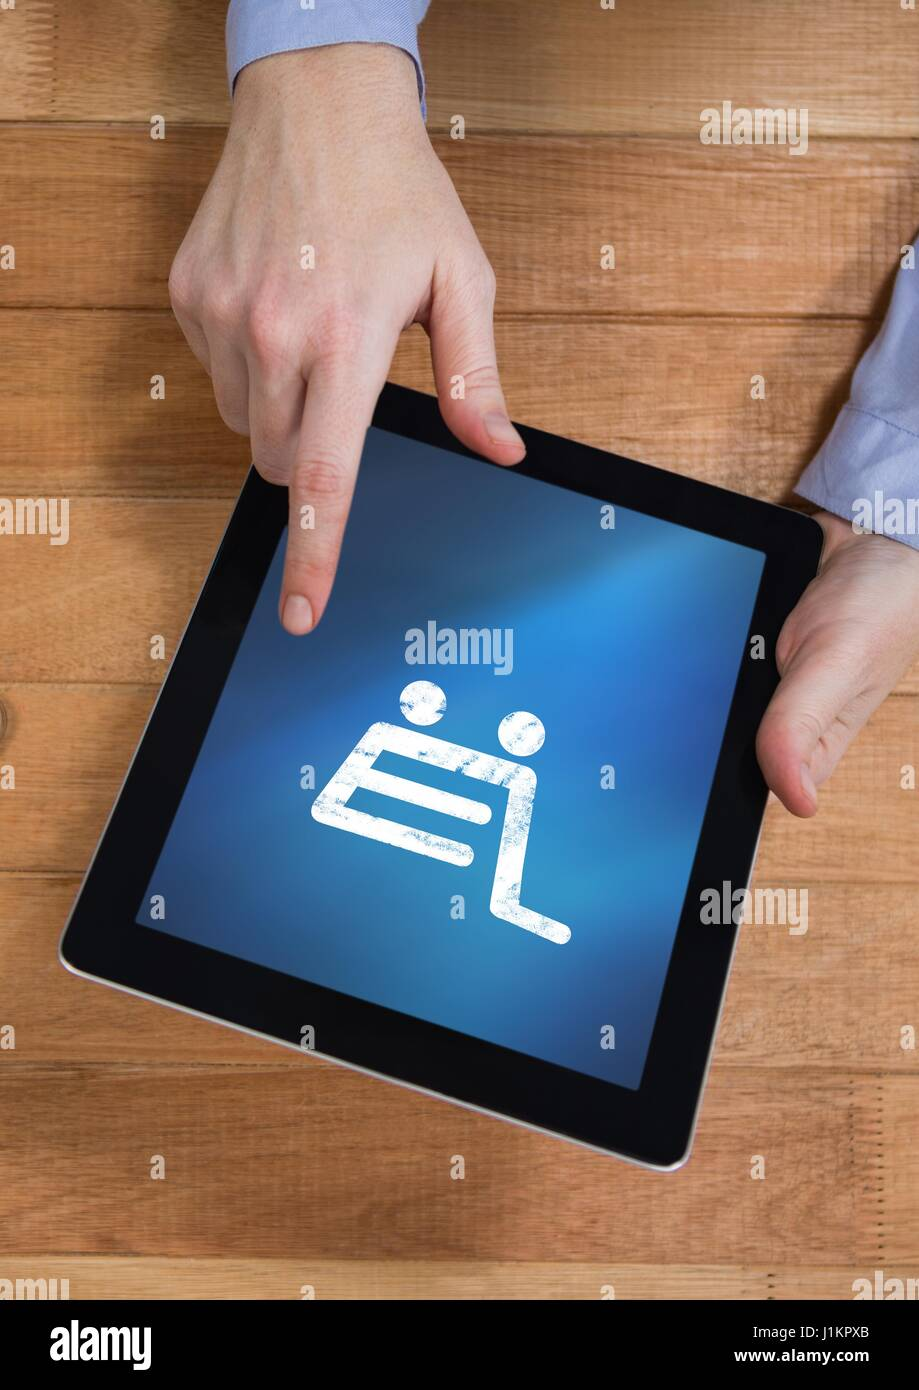 Digital composite of Person using Tablet with Shopping trolley icon - Stock Image